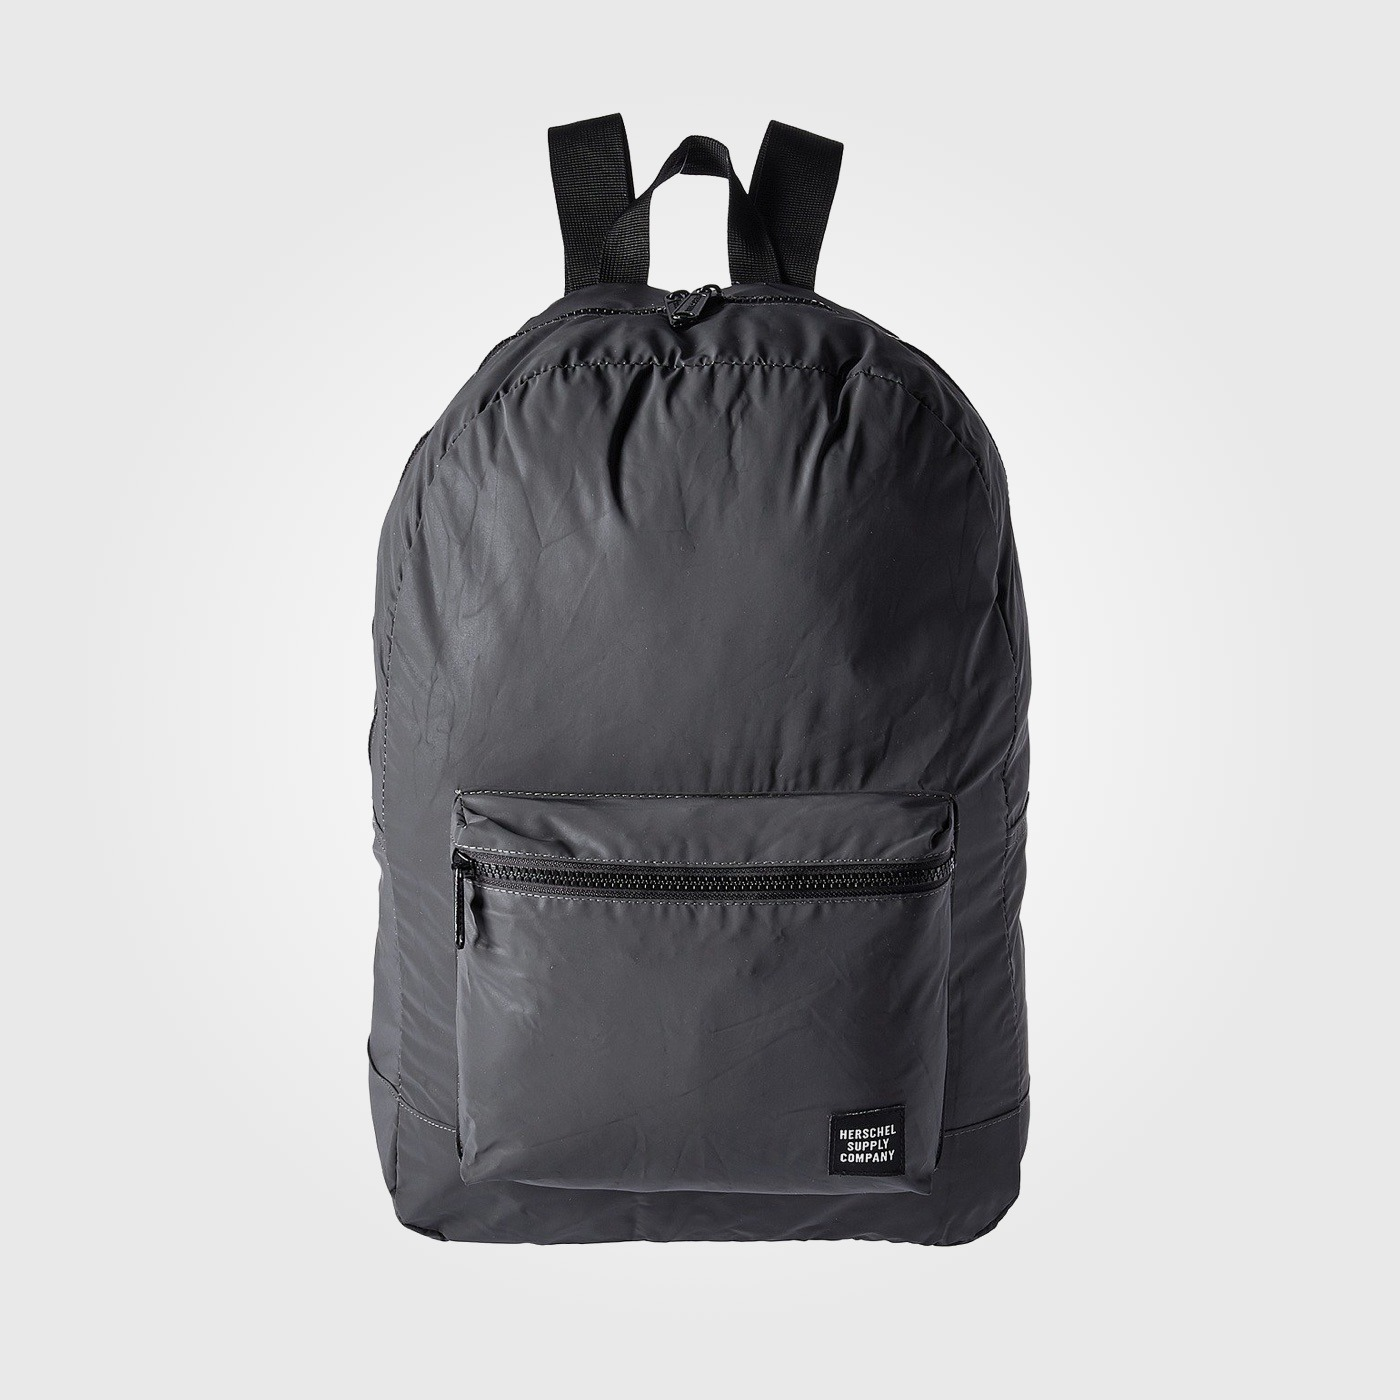 Herschel Supply Co Packable Daypack